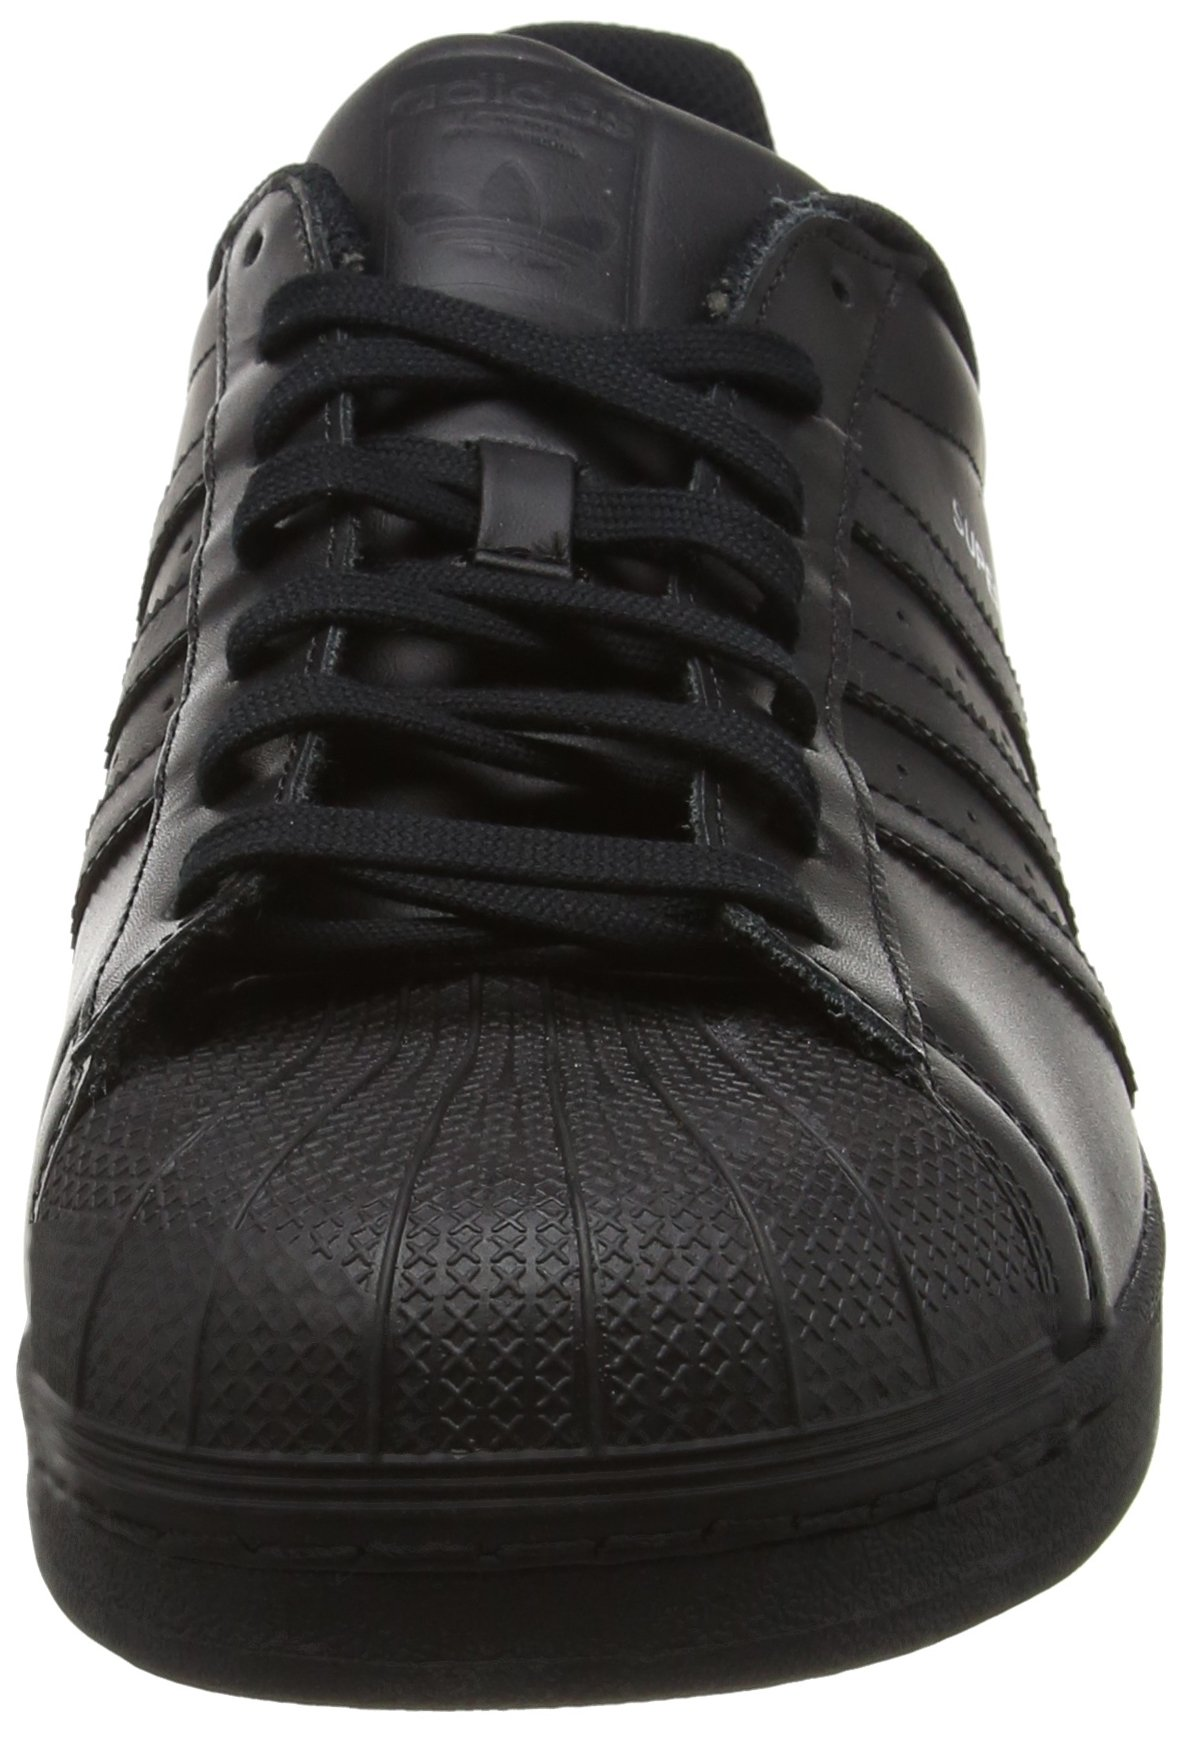 Adidas Originals Superstar Foundation Scarpe da Ginnastica Unisex - Adulto 4 spesavip